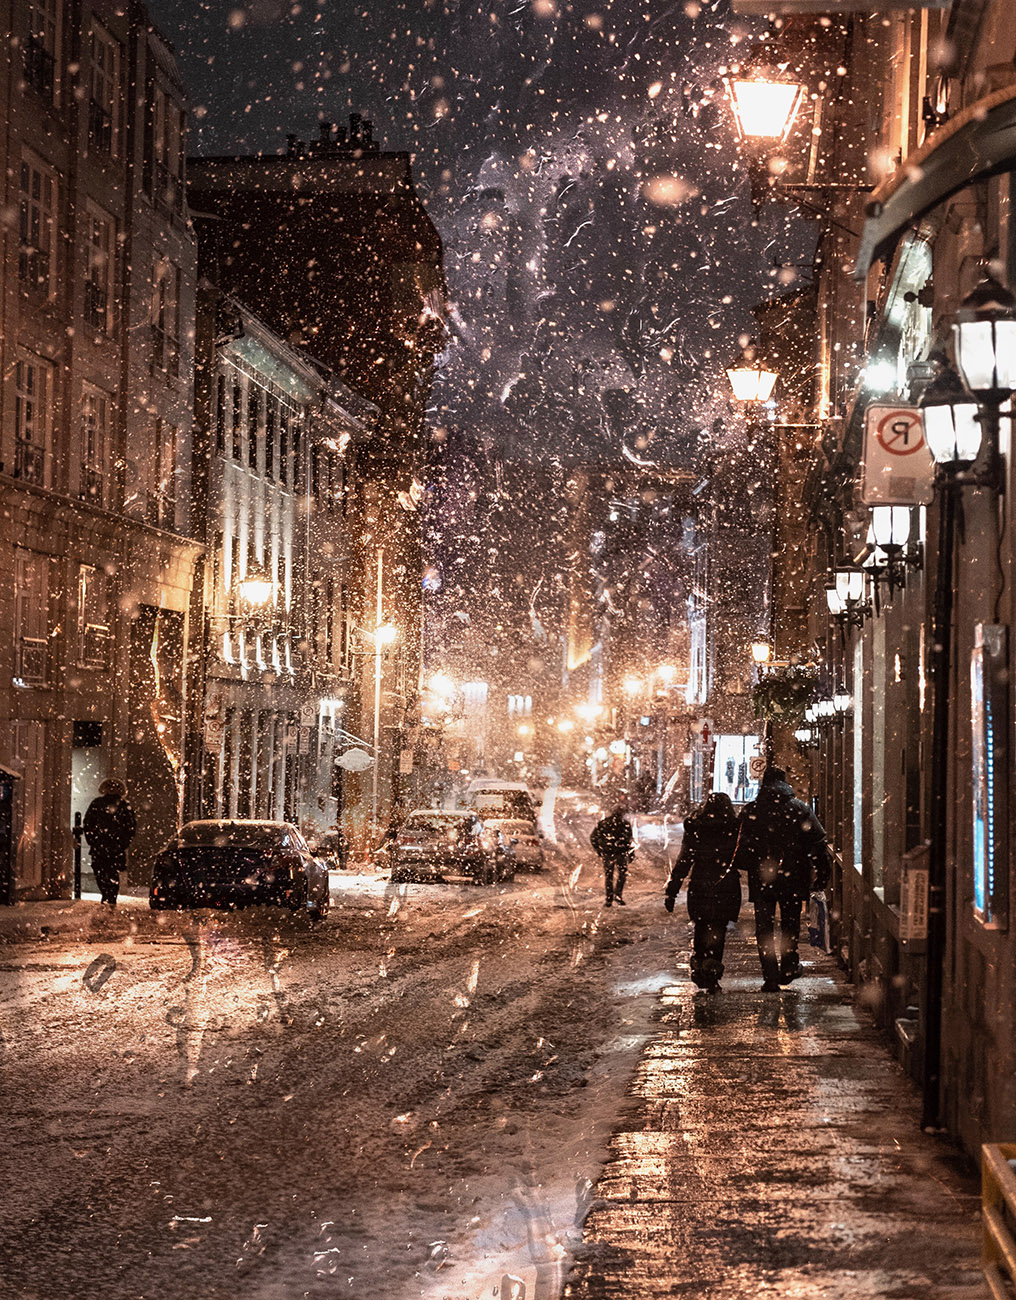 Bad Winter Weather in City Street - Stock Photo